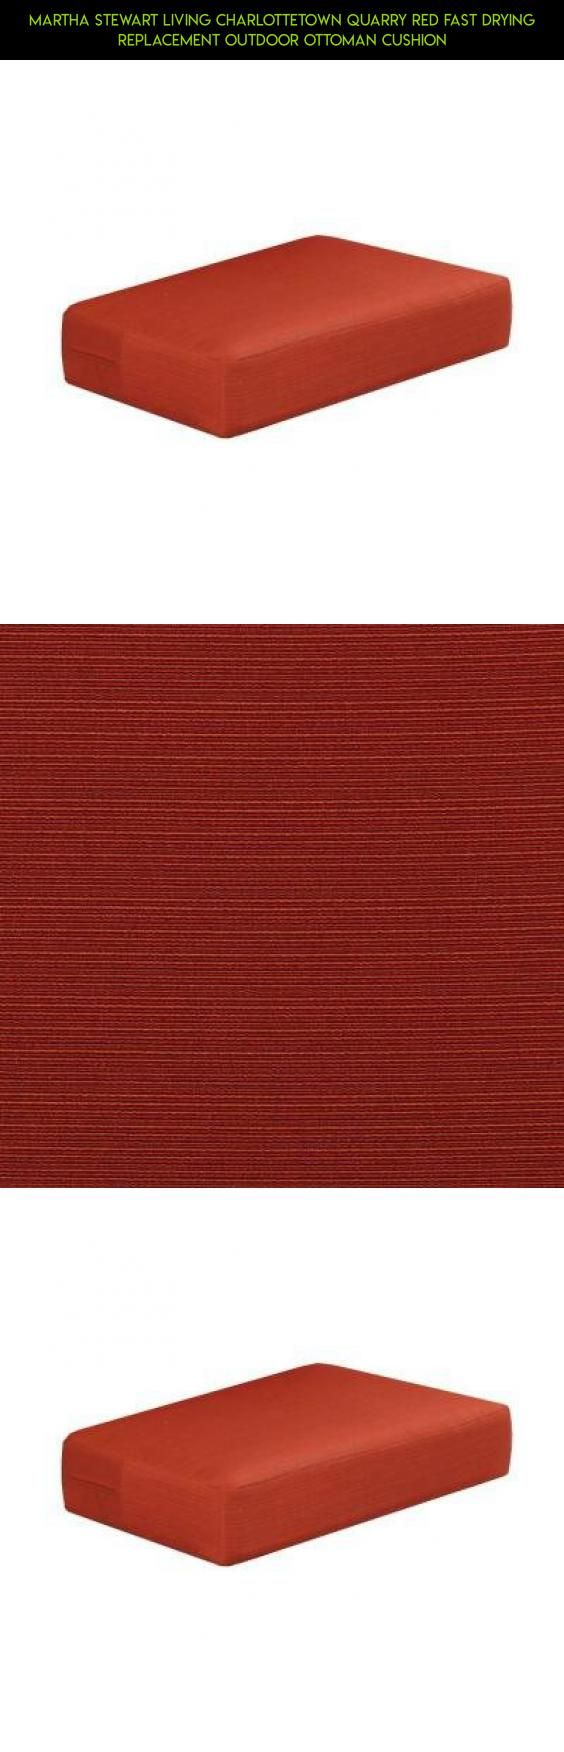 Martha Stewart Living Charlottetown Quarry Red Fast Drying Replacement  Outdoor Ottoman Cushion #racing #products